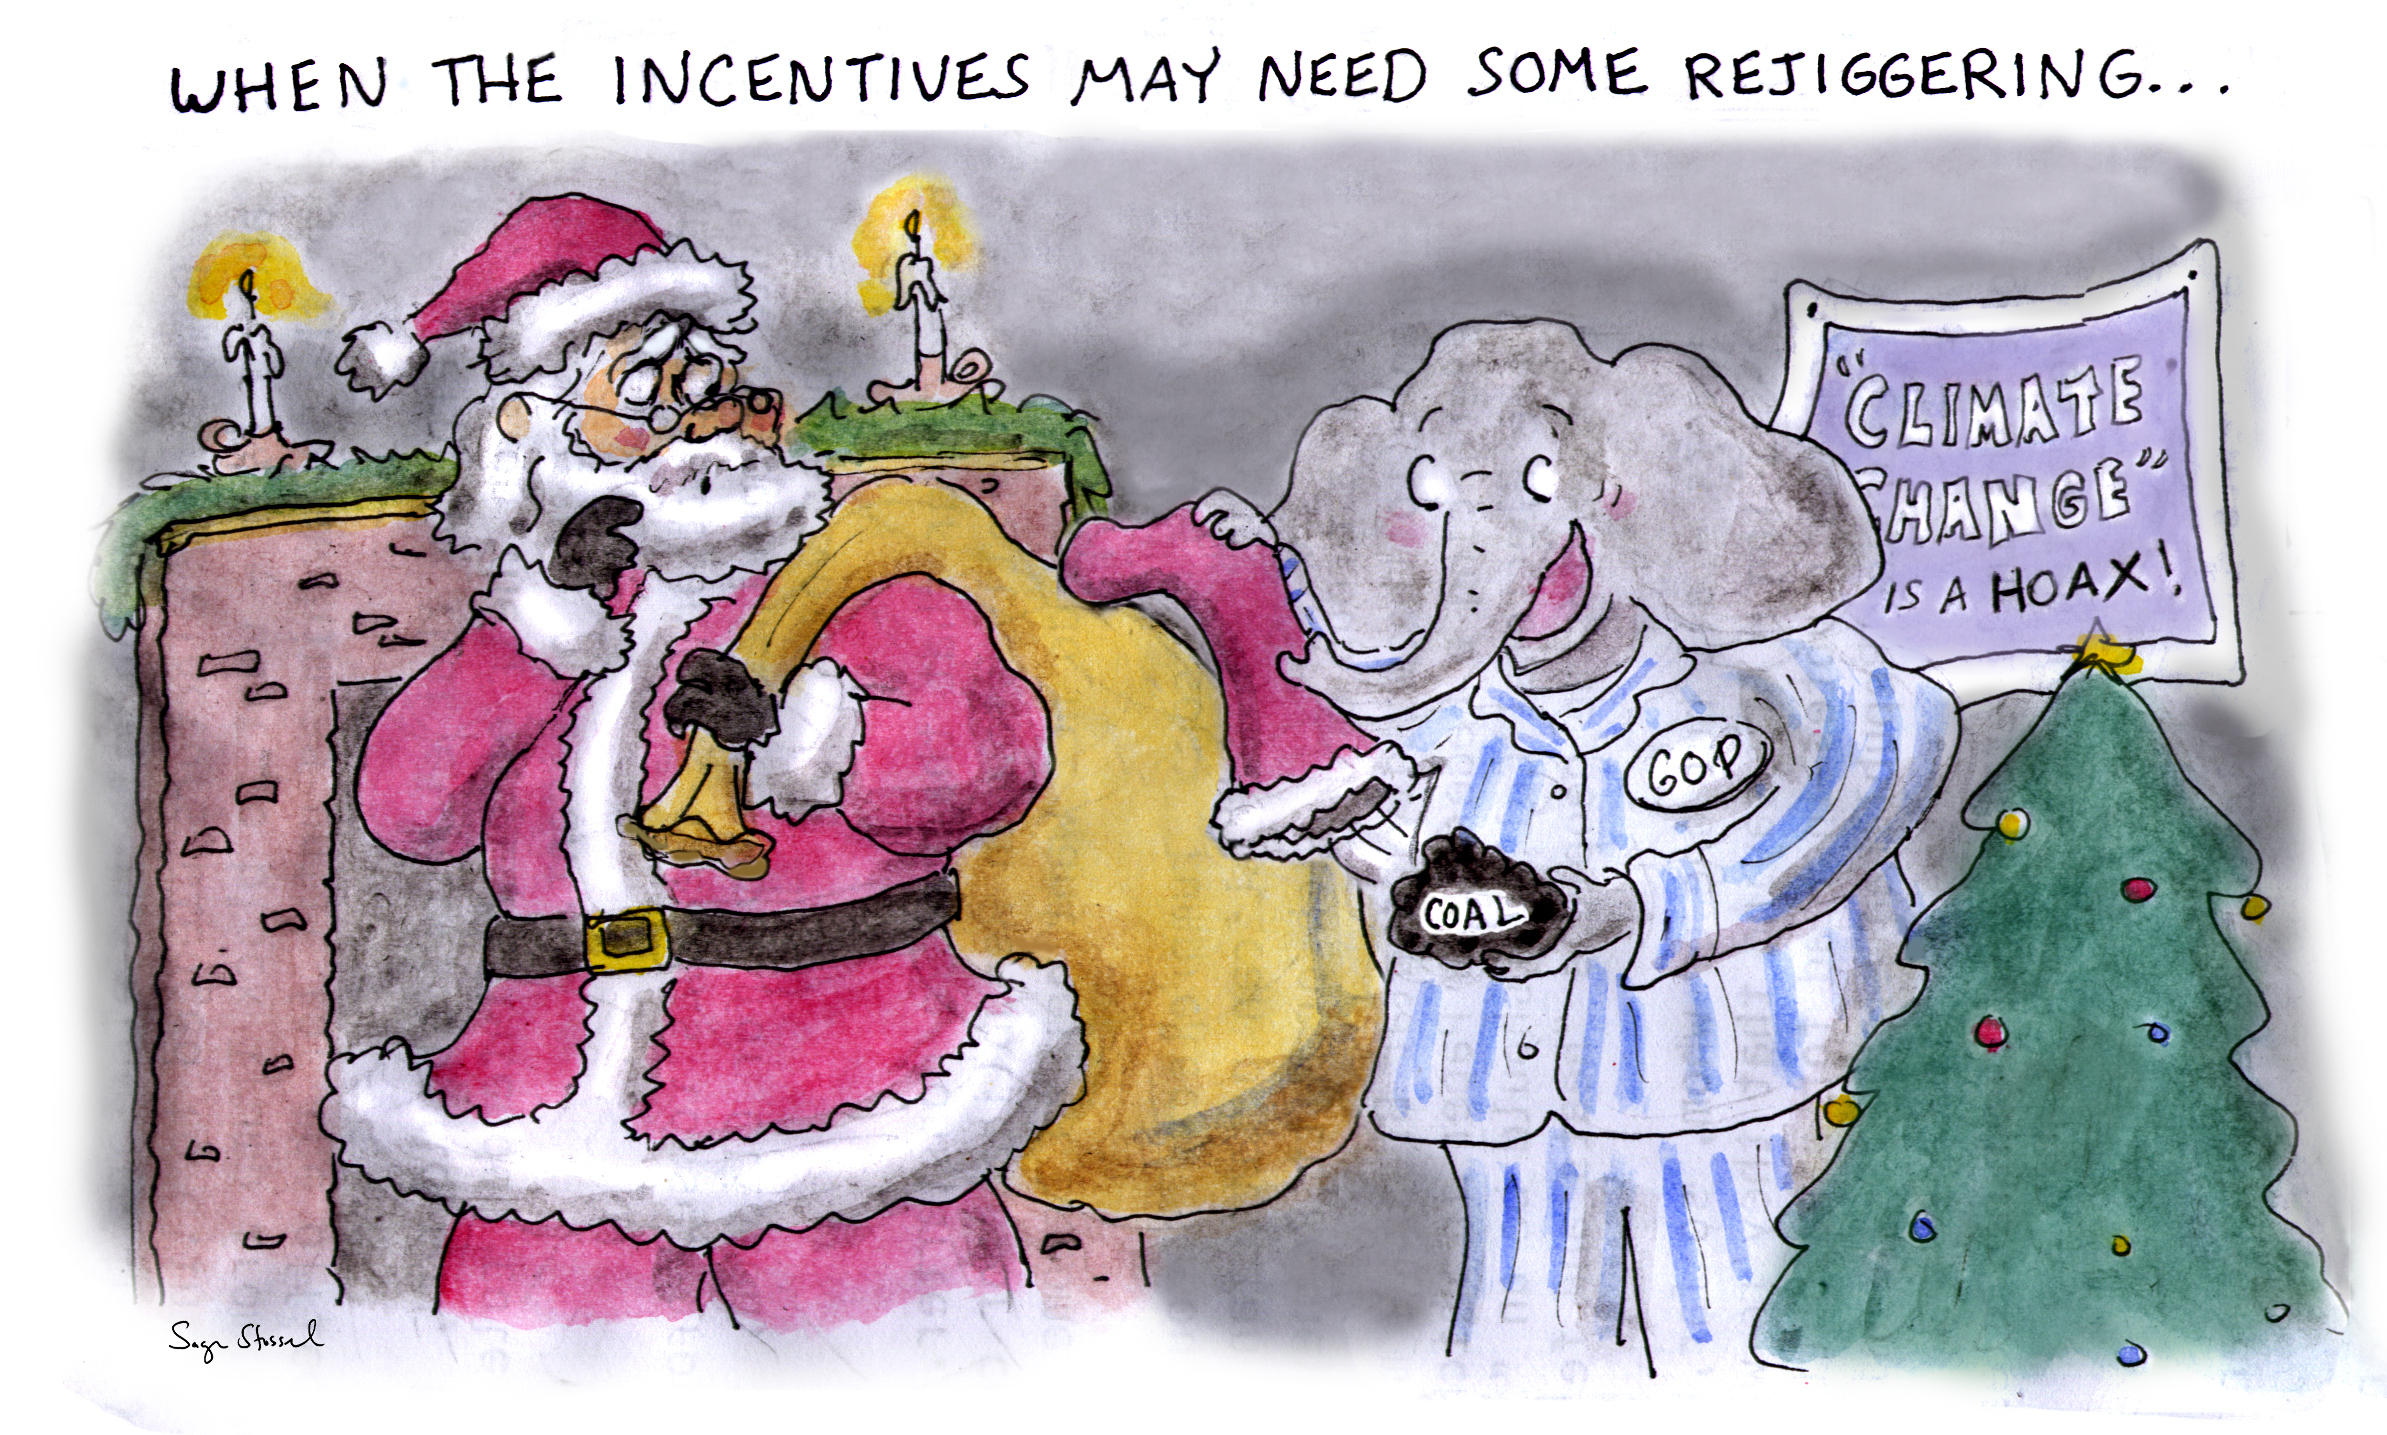 GOP, climate change, republicans, exxon, coal, questionnaire, energy department, rex tillerson, rick perry, deniers, christmas, santa, cartoon